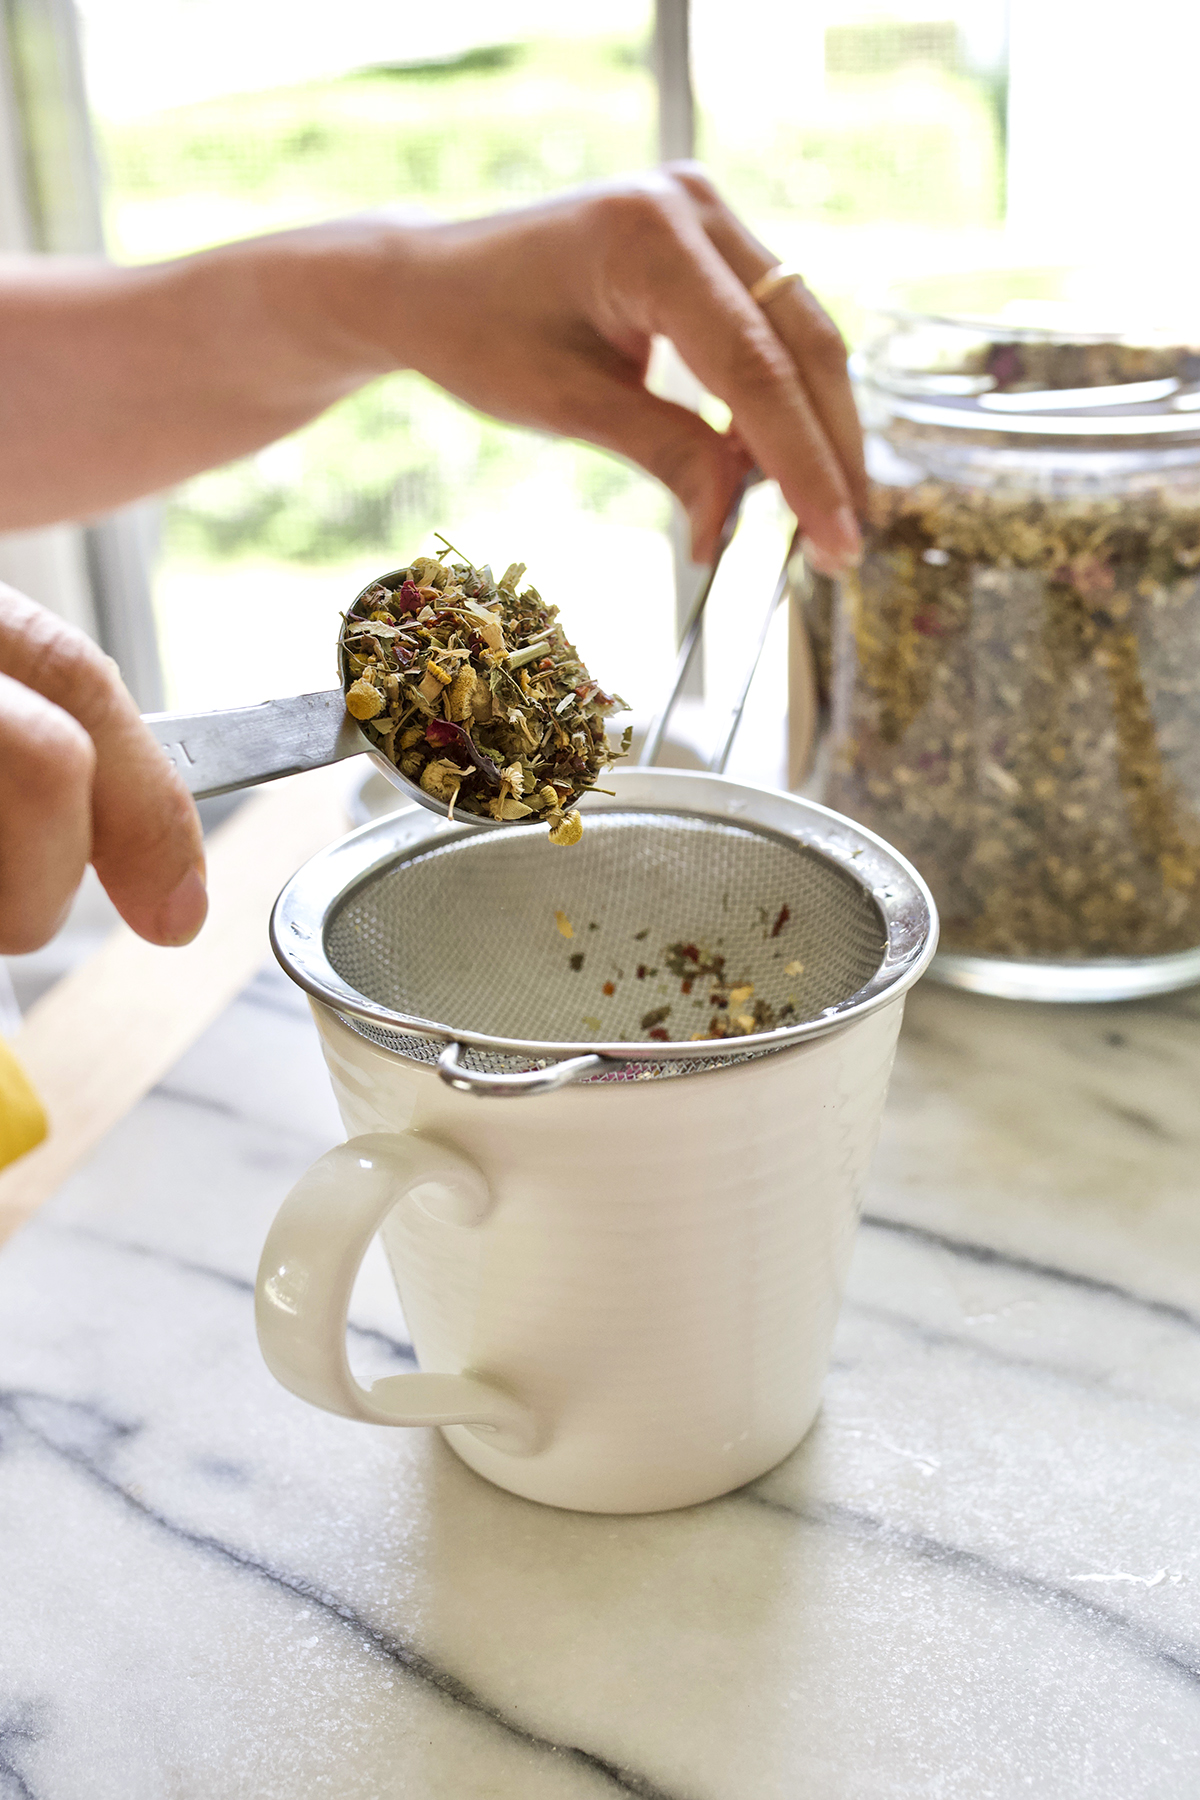 Free Registration To Our New Making Herbal Preparations 101 Mini Course! | Herbal Academy | For 10 days only, our newest offering, the Making Herbal Preparations 101 Mini Course, is available for FREE! Register here!